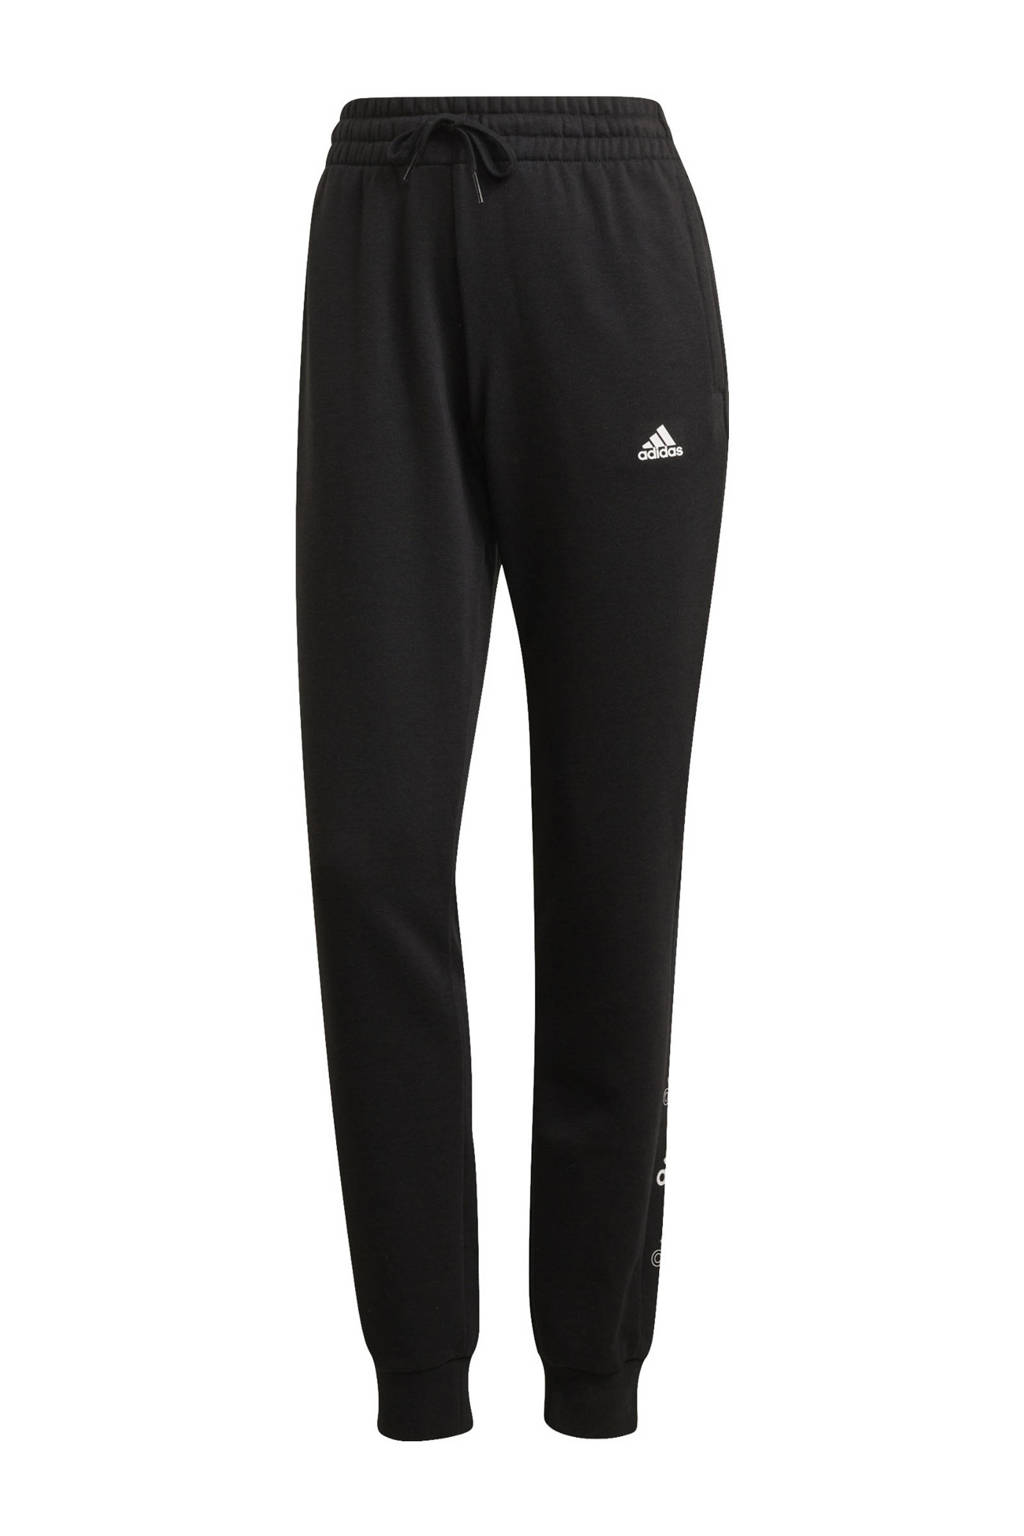 adidas Performance joggingbroek zwart, Zwart